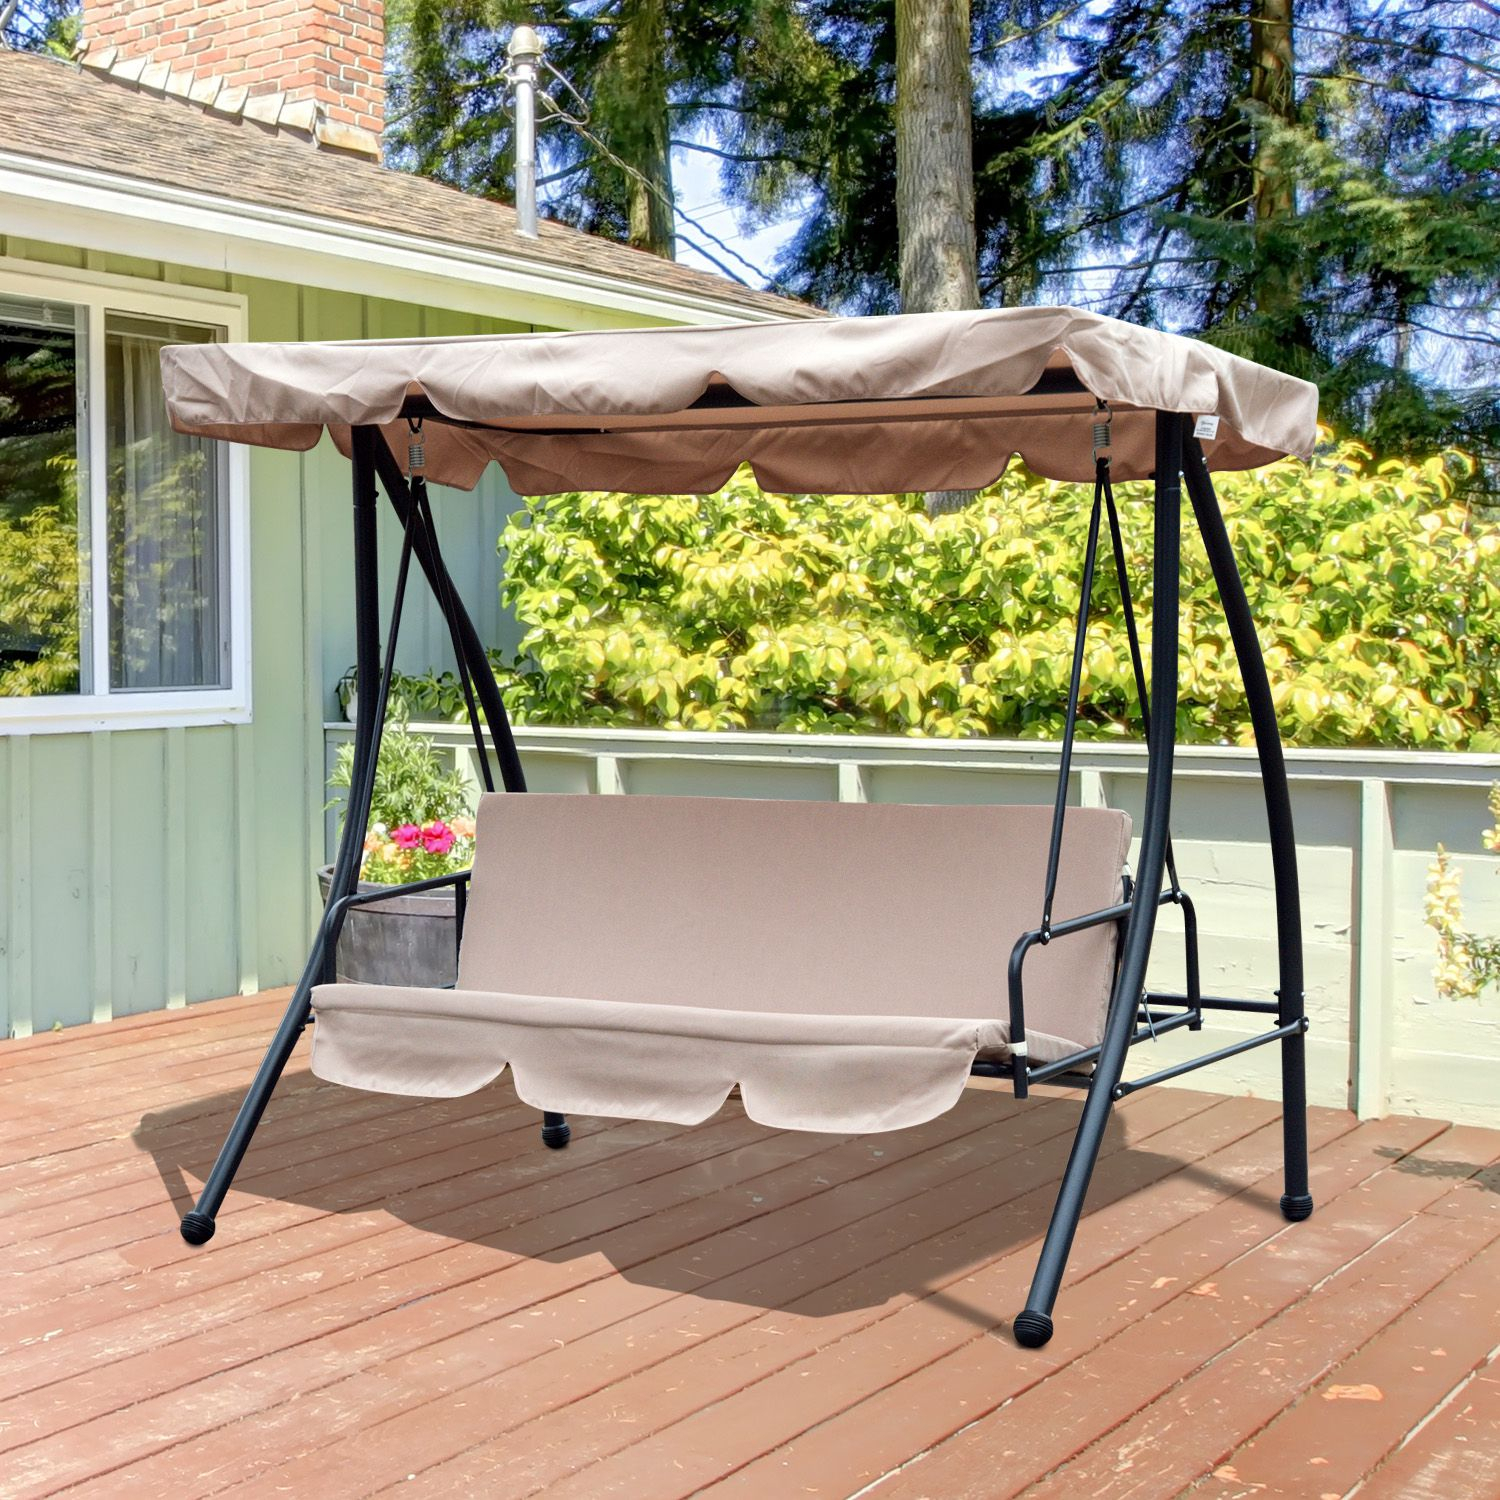 Outsunny Convertible Patio Swing Chair 3 Person Hammock Cushioned Portable Outdoor With Tilt Canopy Beige Intended For 2 Person Outdoor Convertible Canopy Swing Gliders With Removable Cushions Beige (View 20 of 25)